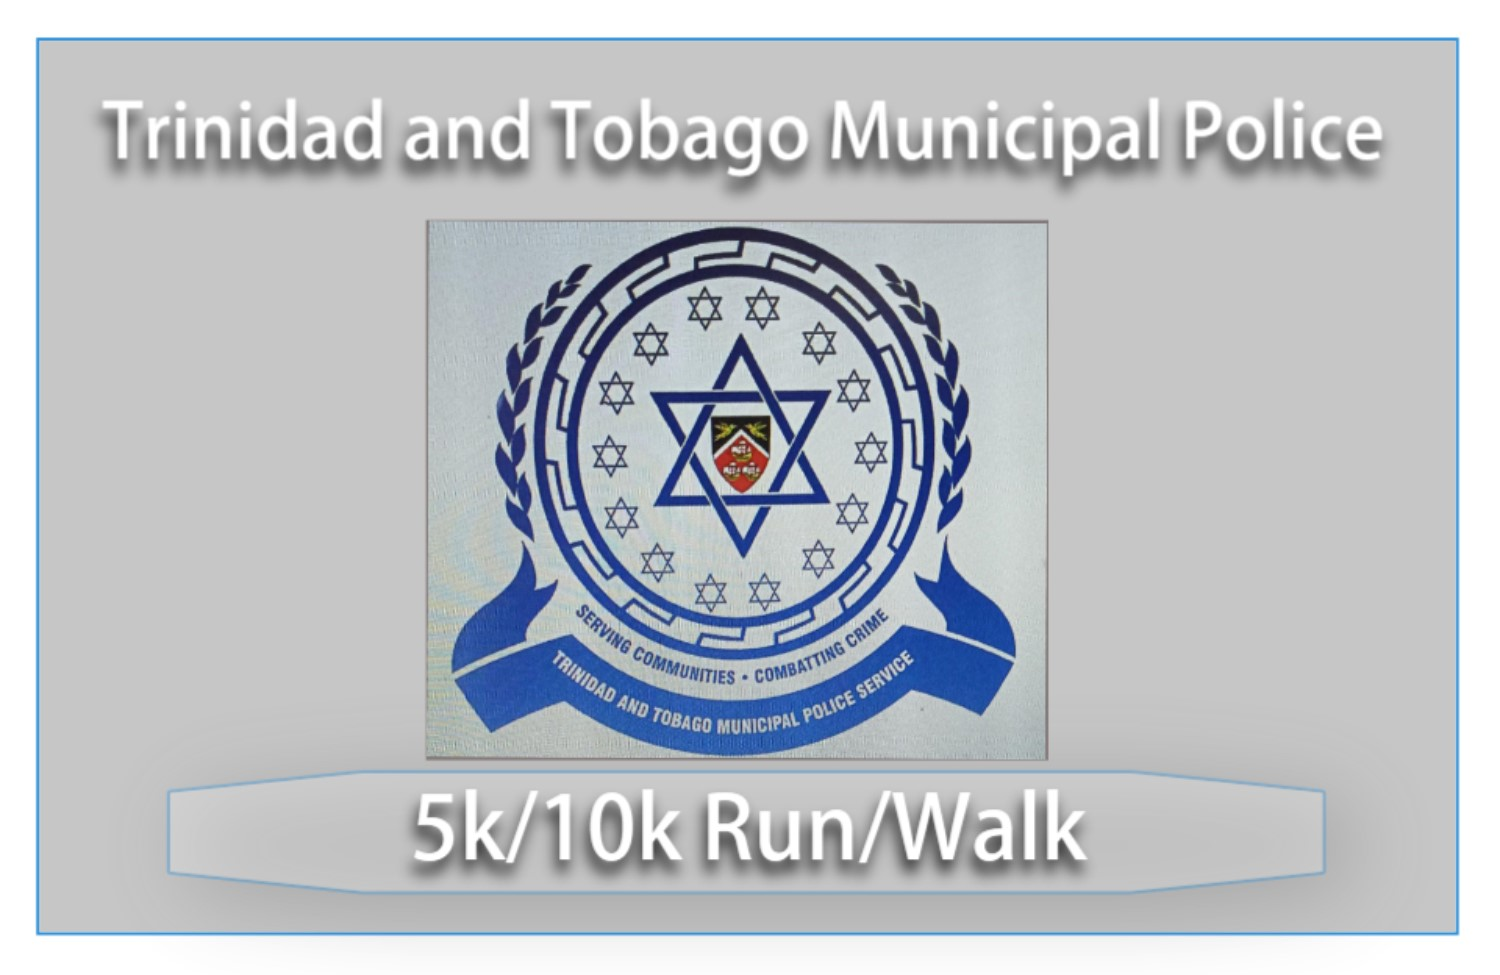 T&T Municipal Police 5k/10k Run/Walk